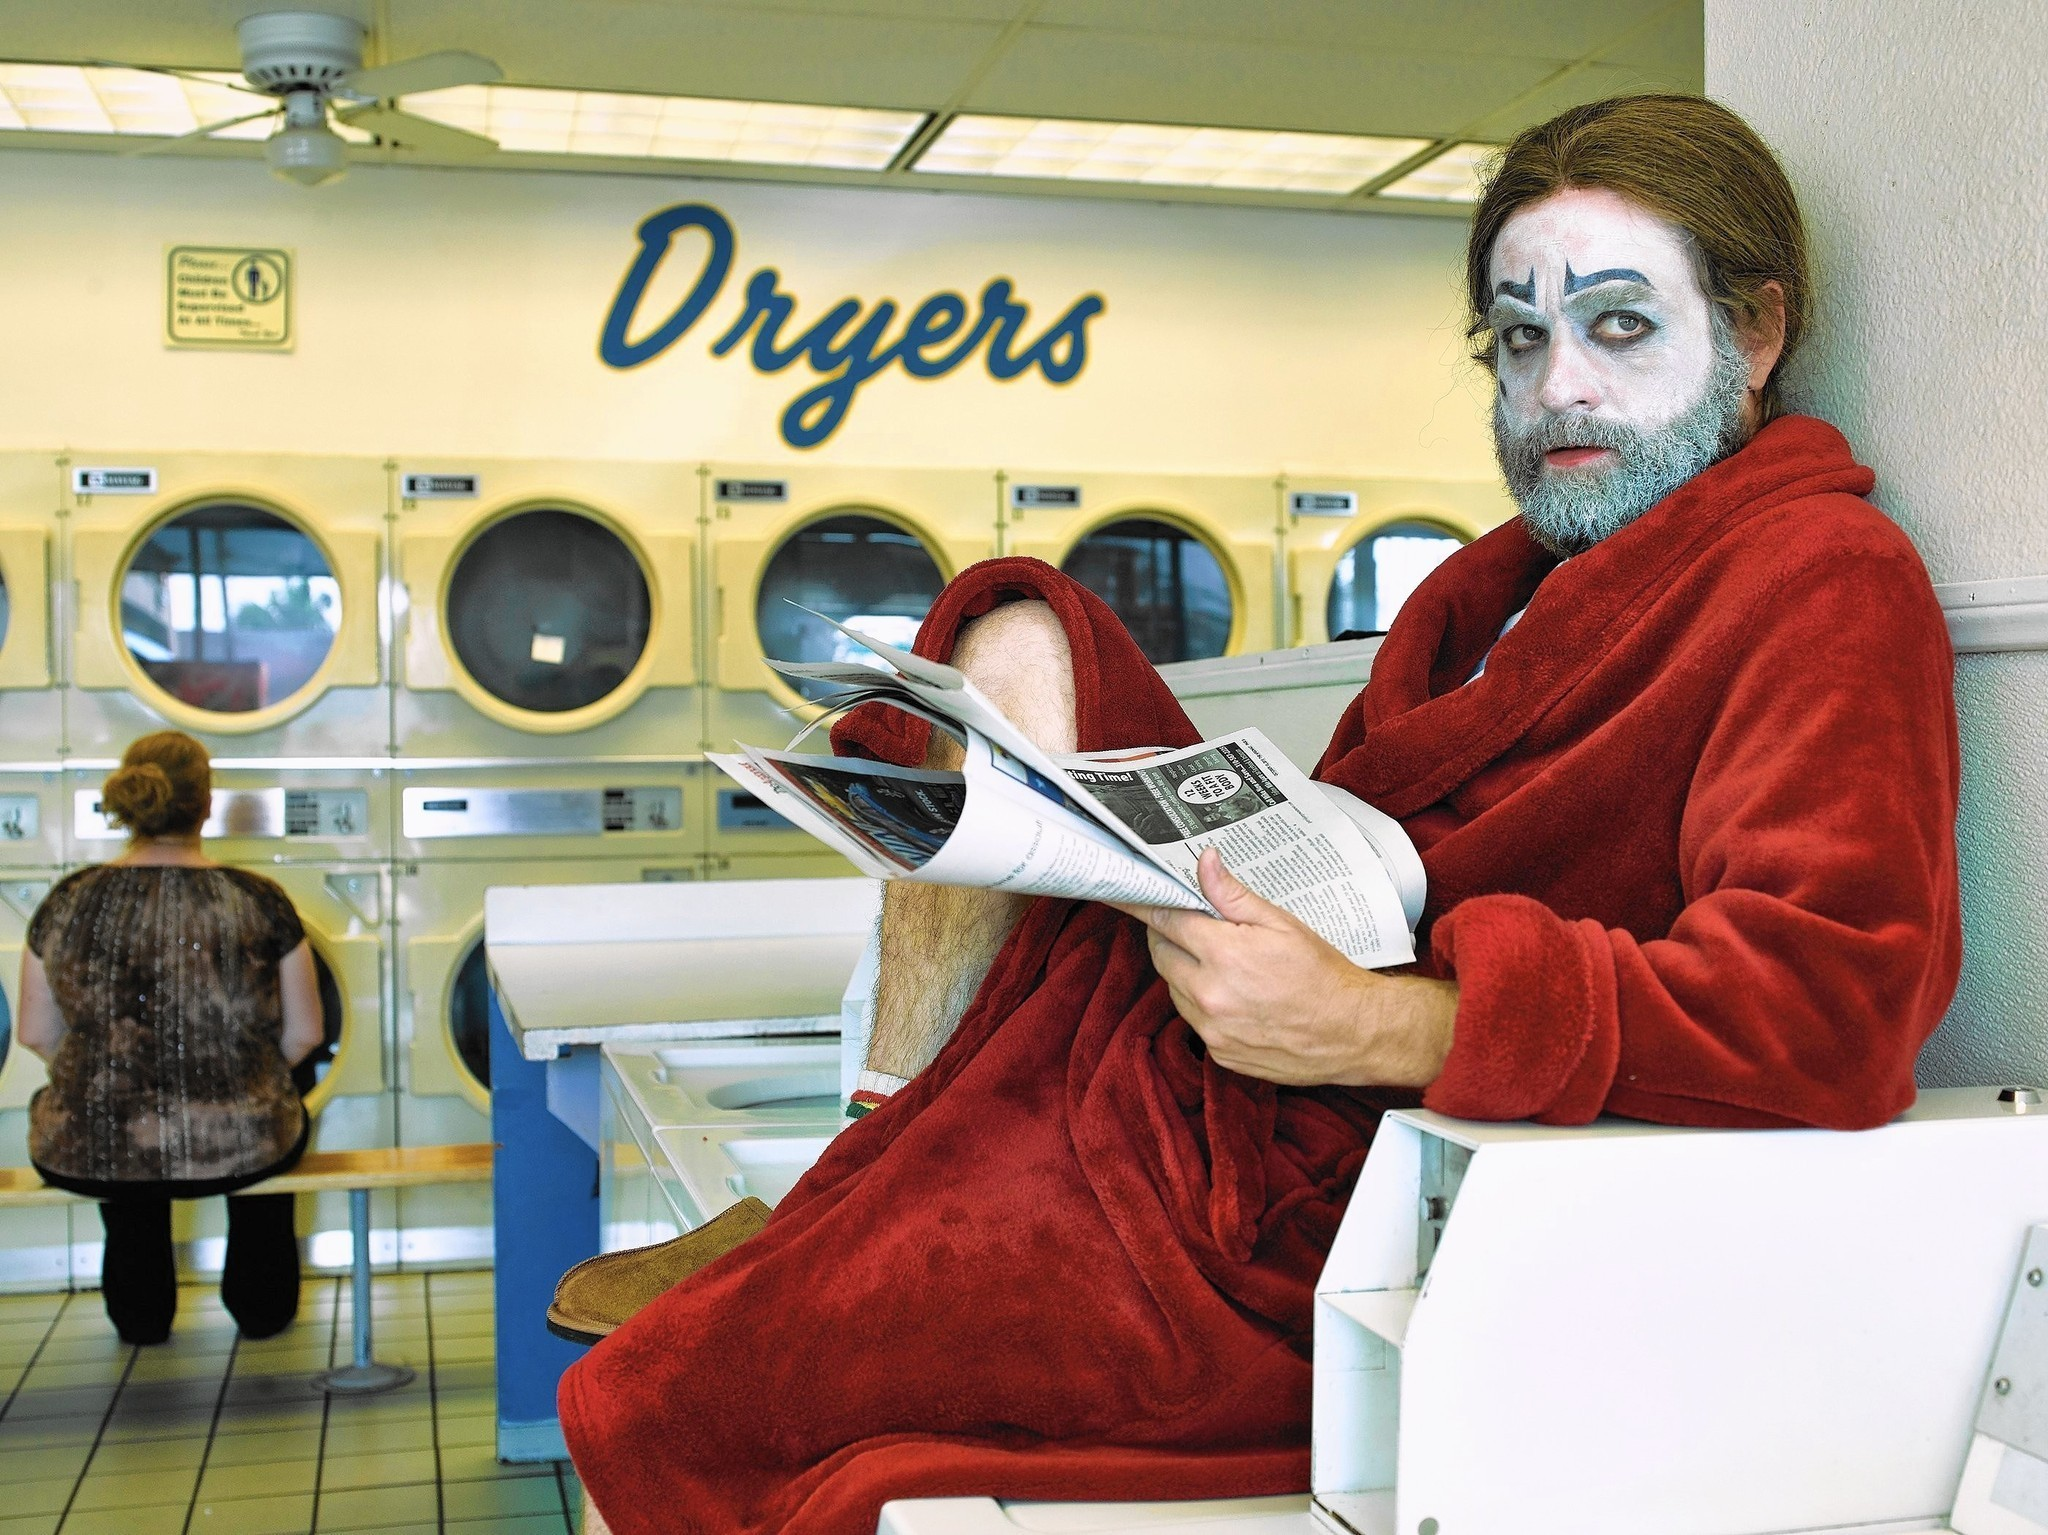 FX 'Baskets' ready for another season of Zach Galifianakis' French clown dreams 2017 images